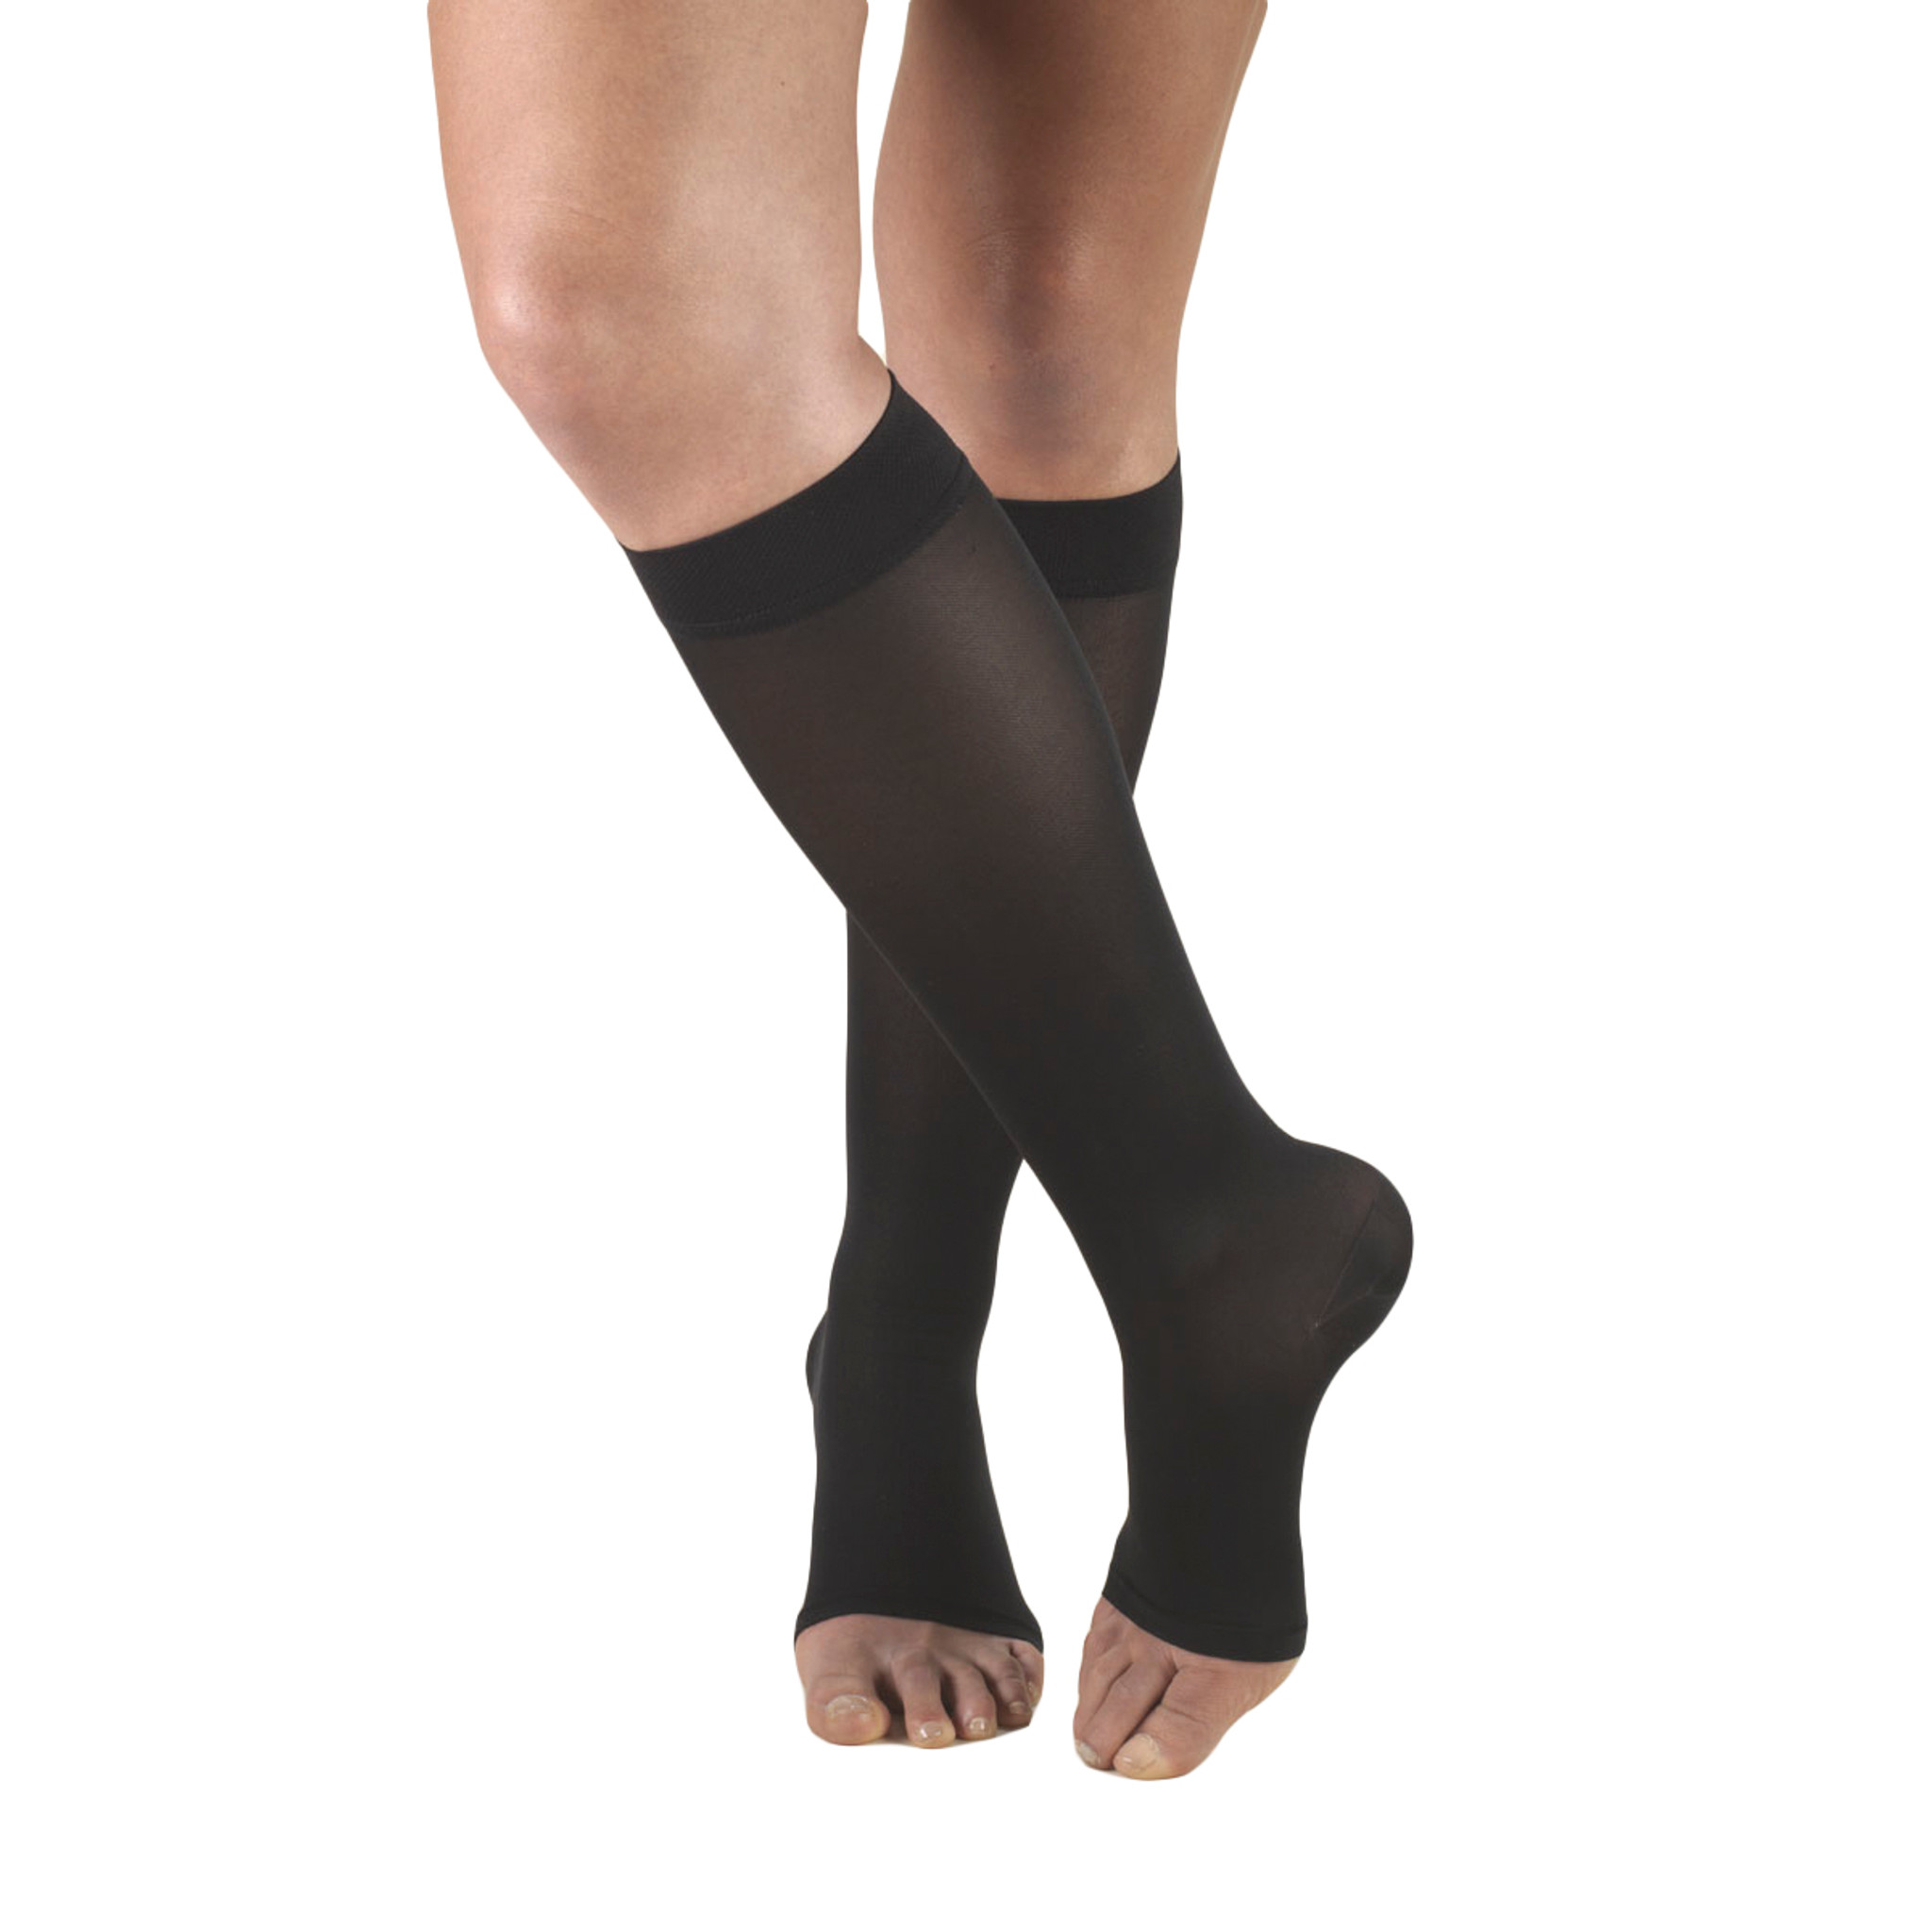 328cf54b2b ... Knee High Compression Socks, Front Click to enlarge ...